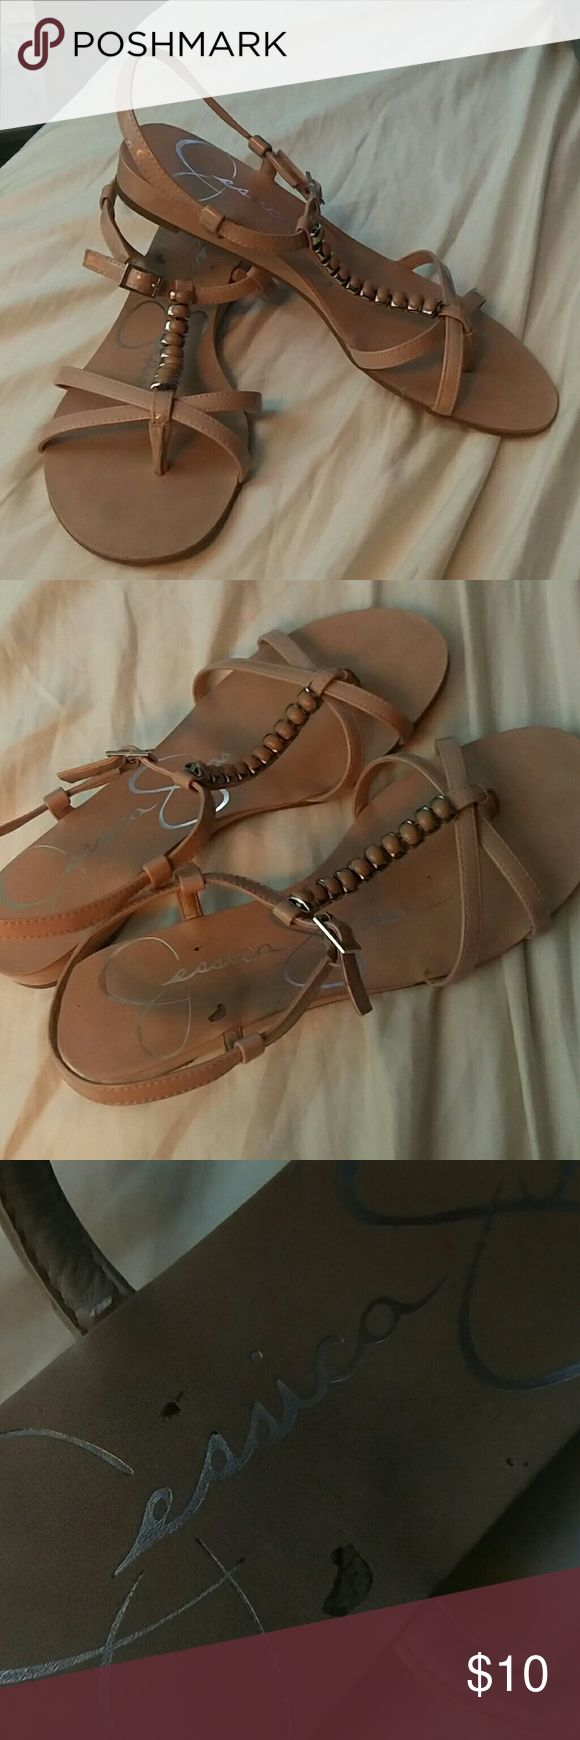 Jessica Simpson Sandals Authentic, like new Jessica Simpson Sandals. There is a small scuff mark on the sandal itself, but otherwise these shoes are flawless with no other marks, wear, or indentations. They have only been worn twice. I won't be accepting trades on this item. Please let me know if you have any questions! Jessica Simpson Shoes Sandals